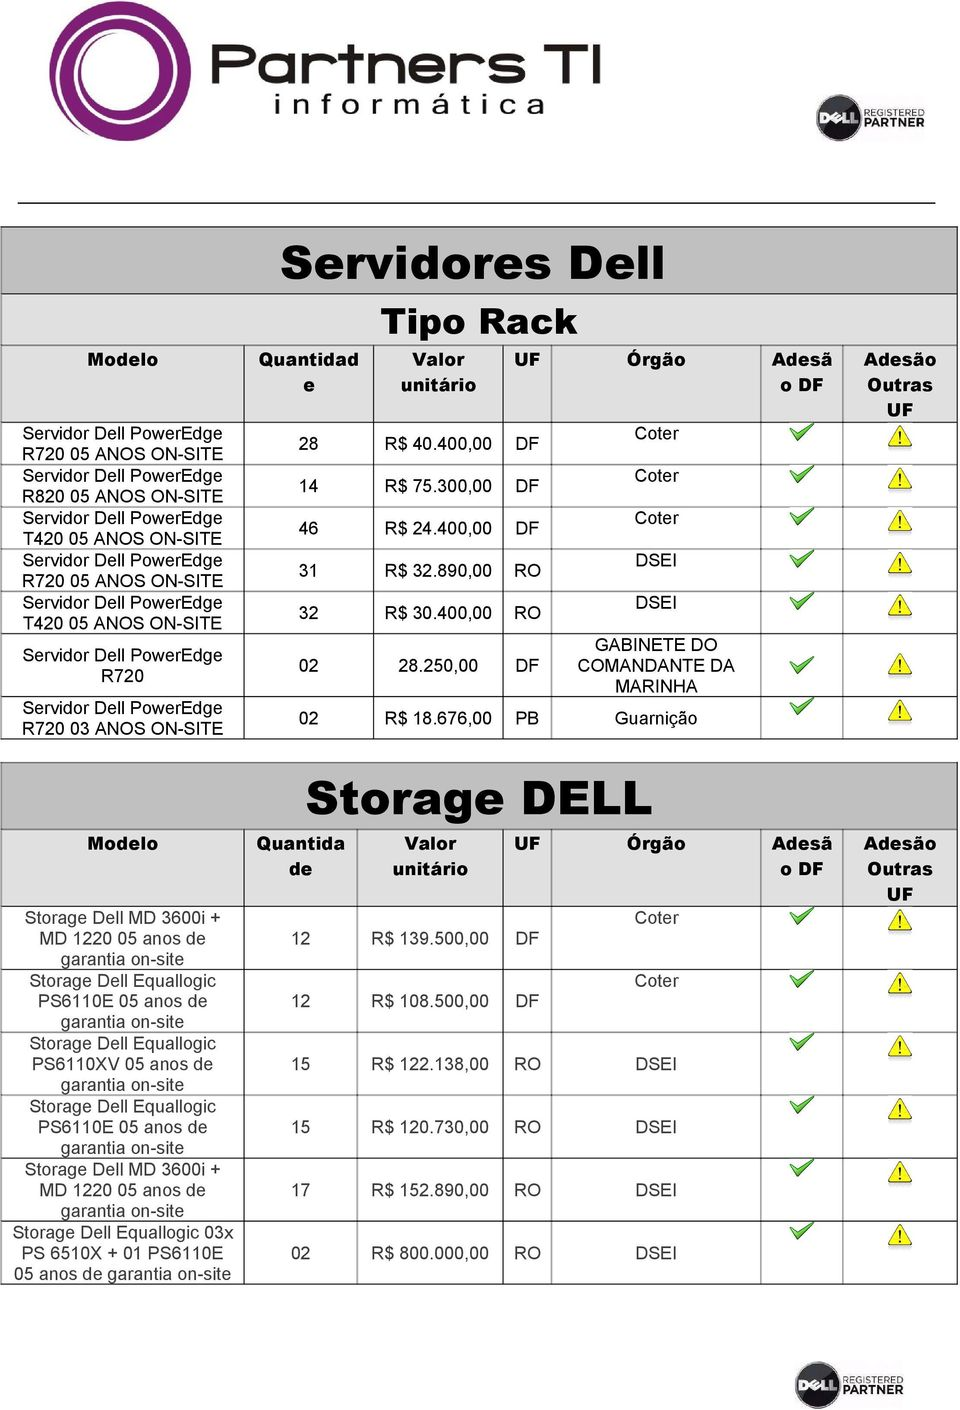 676,00 PB Guarnição Servidor Dell PowerEdge R720 05 ANOS ON-SITE Servidor Dell PowerEdge R820 05 ANOS ON-SITE Servidor Dell PowerEdge T420 05 ANOS ON-SITE Servidor Dell PowerEdge R720 05 ANOS ON-SITE